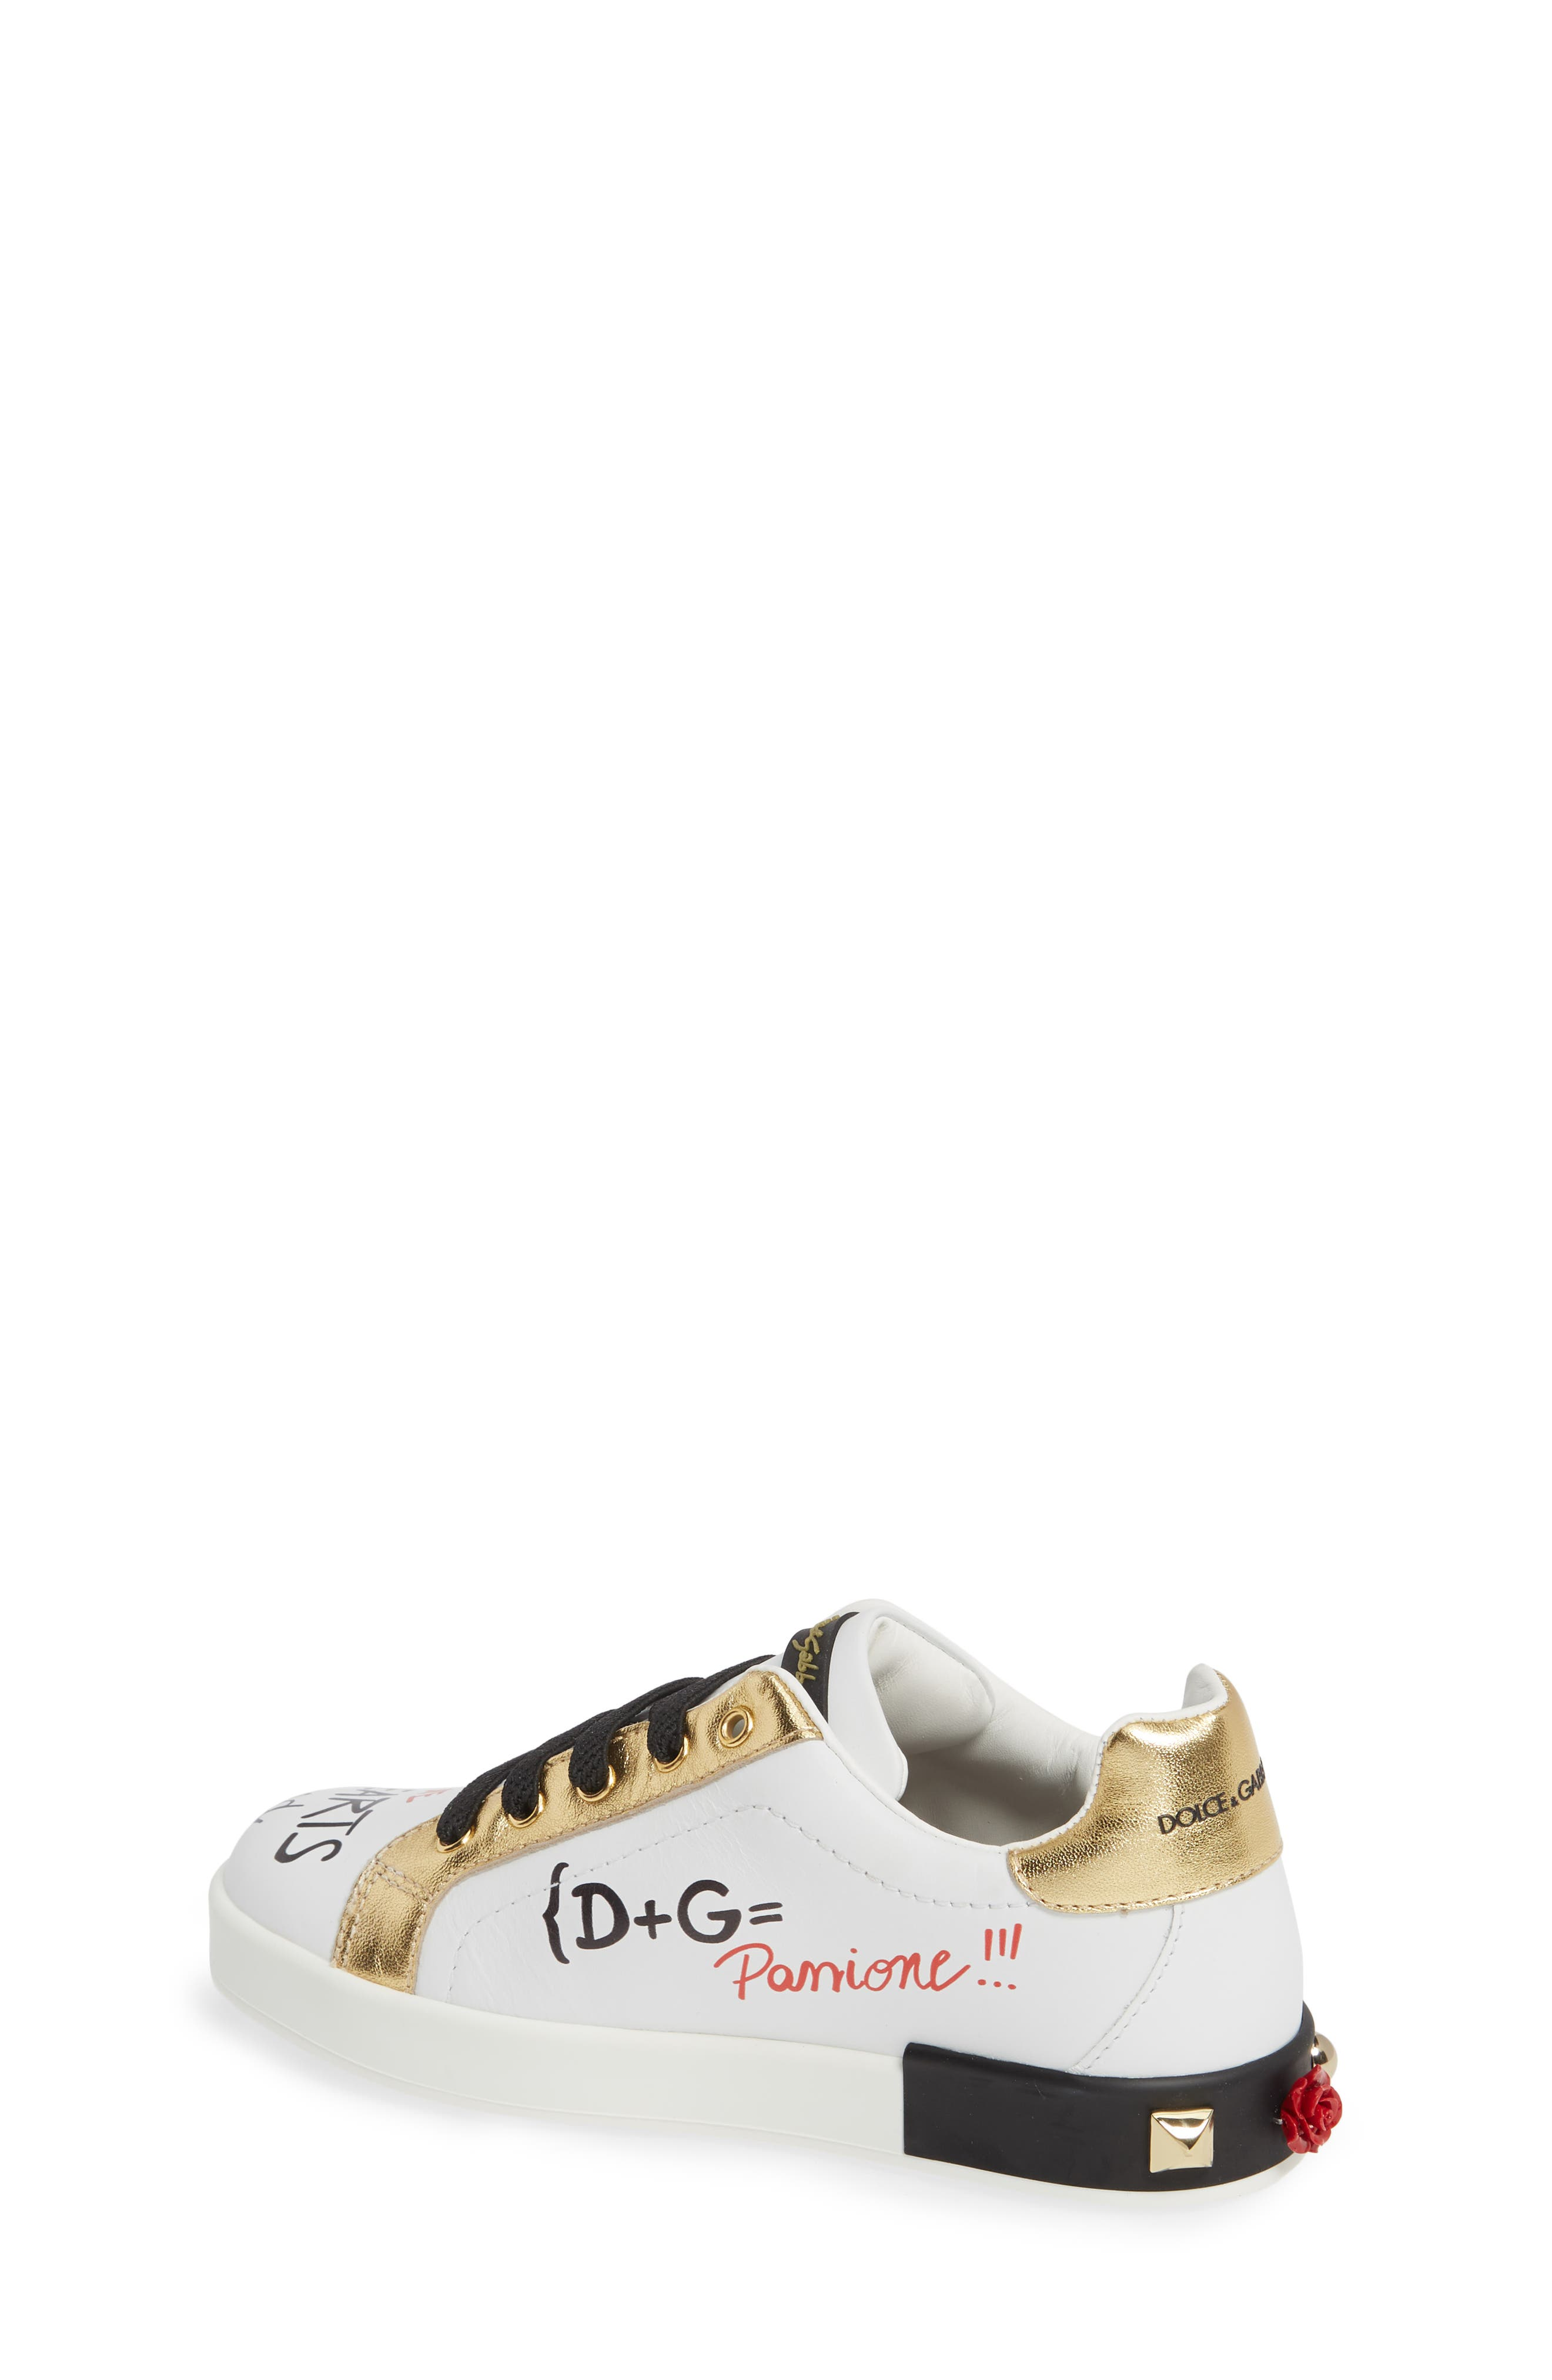 Amore Low Top Sneaker,                             Alternate thumbnail 8, color,                             WHITE